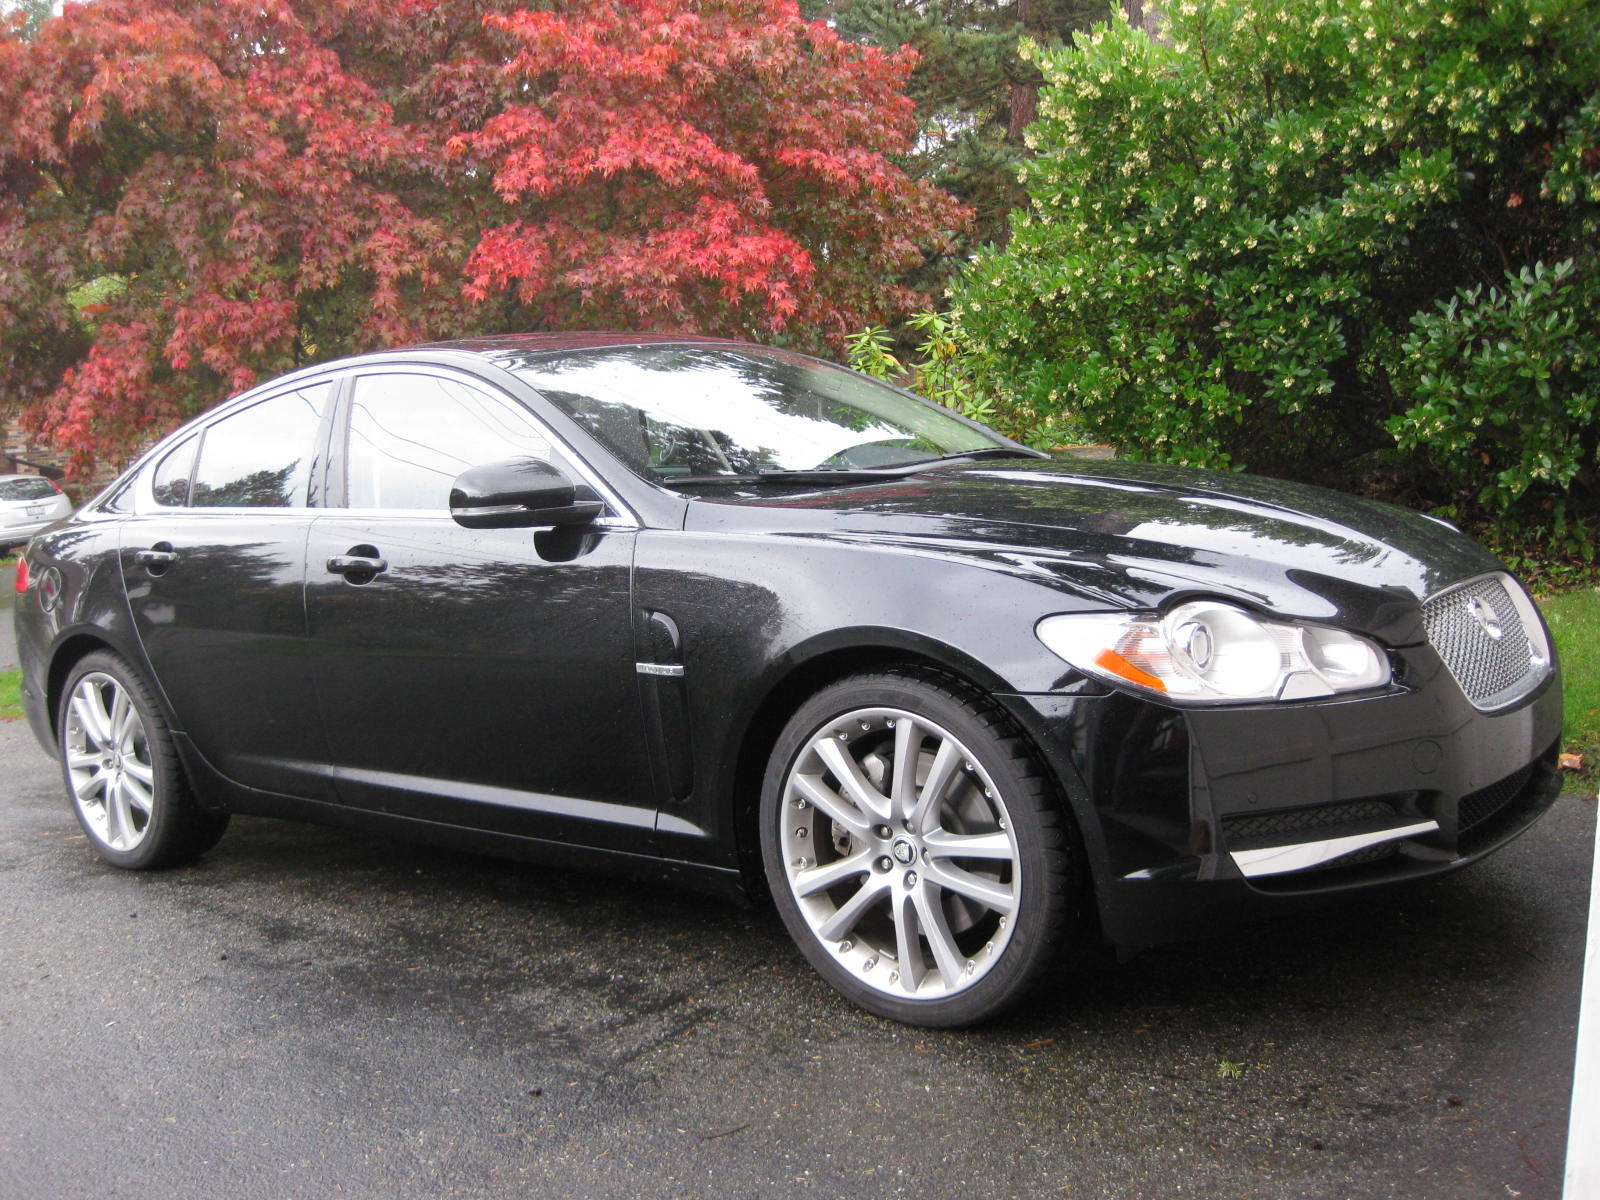 engine xf sedan size l image supercharged jaguar door